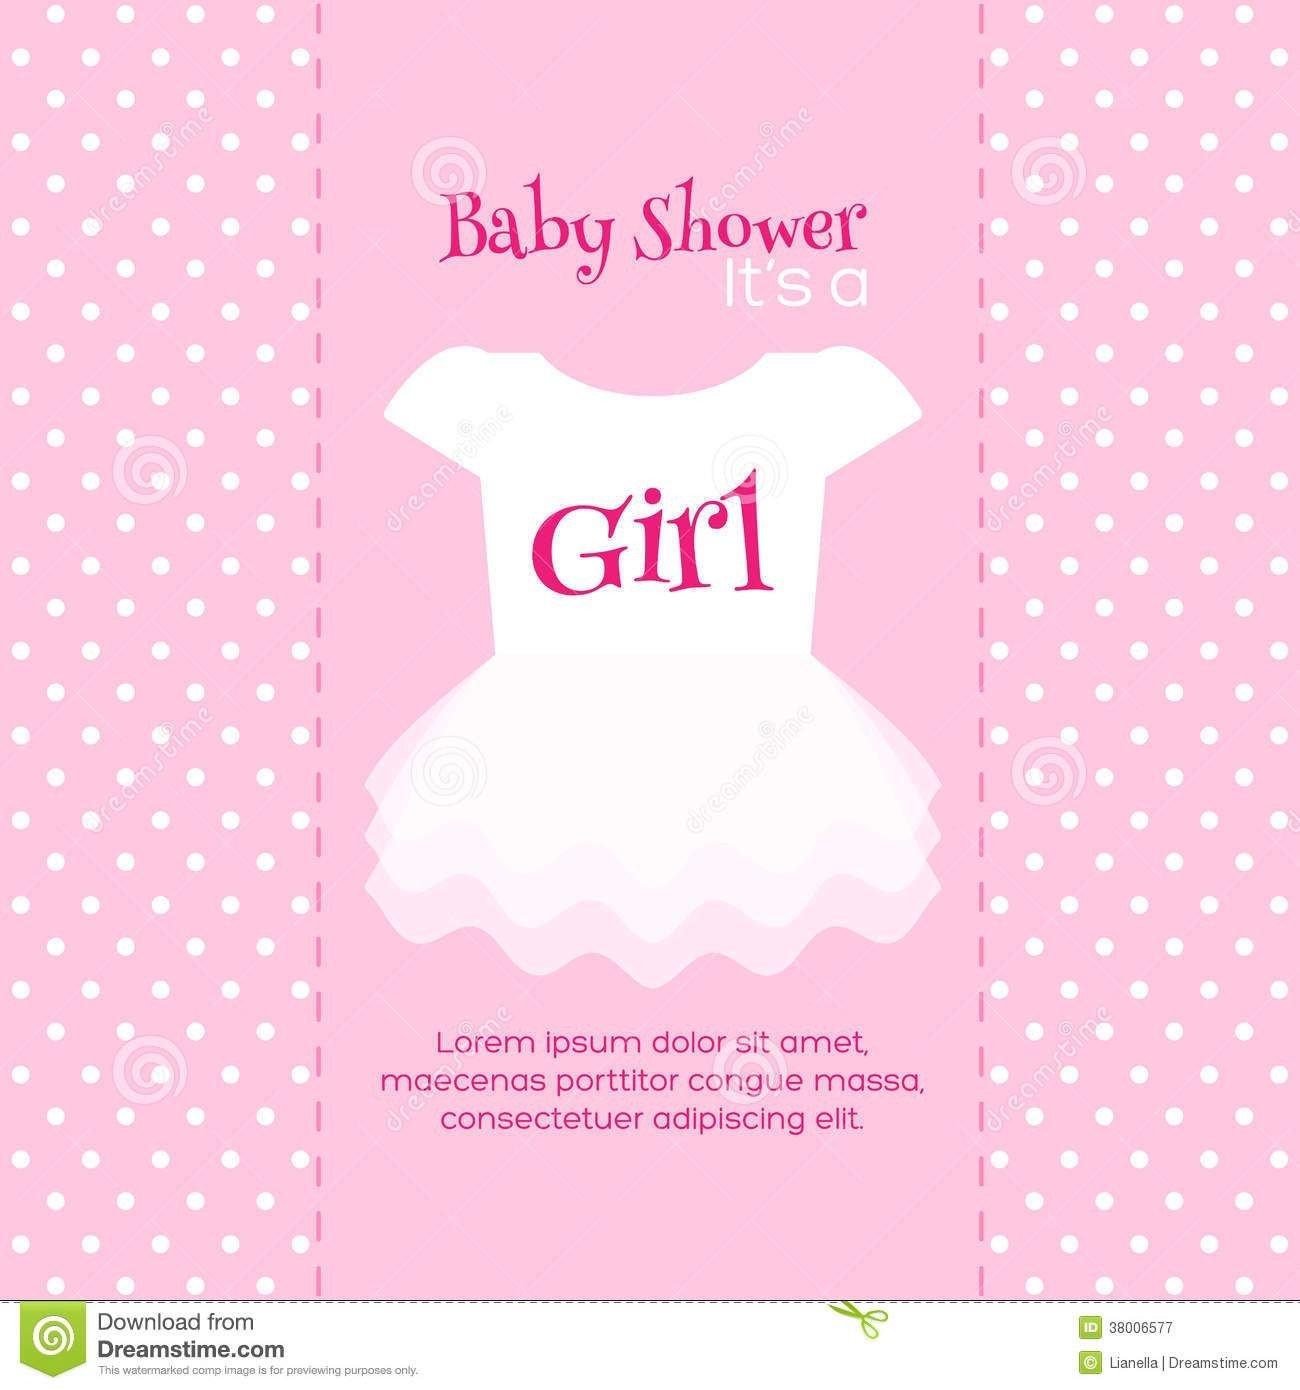 Baby Shower Templates Girl Design Free Printable Baby Shower Invitations for Girls